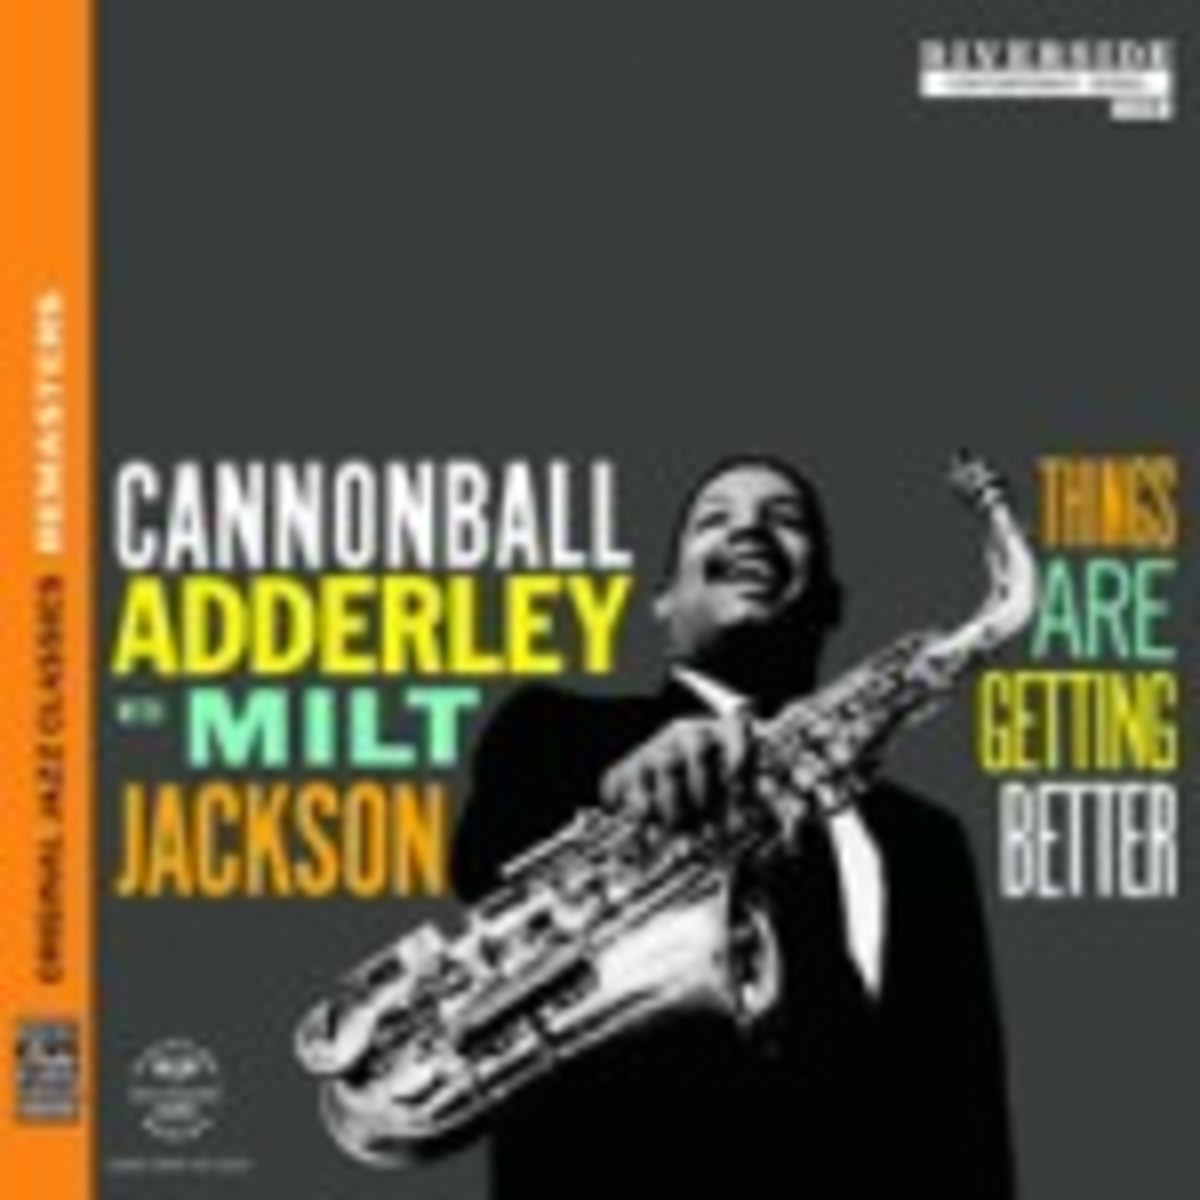 Cannonball Adderley with Milt Jackson things Are Getting Better